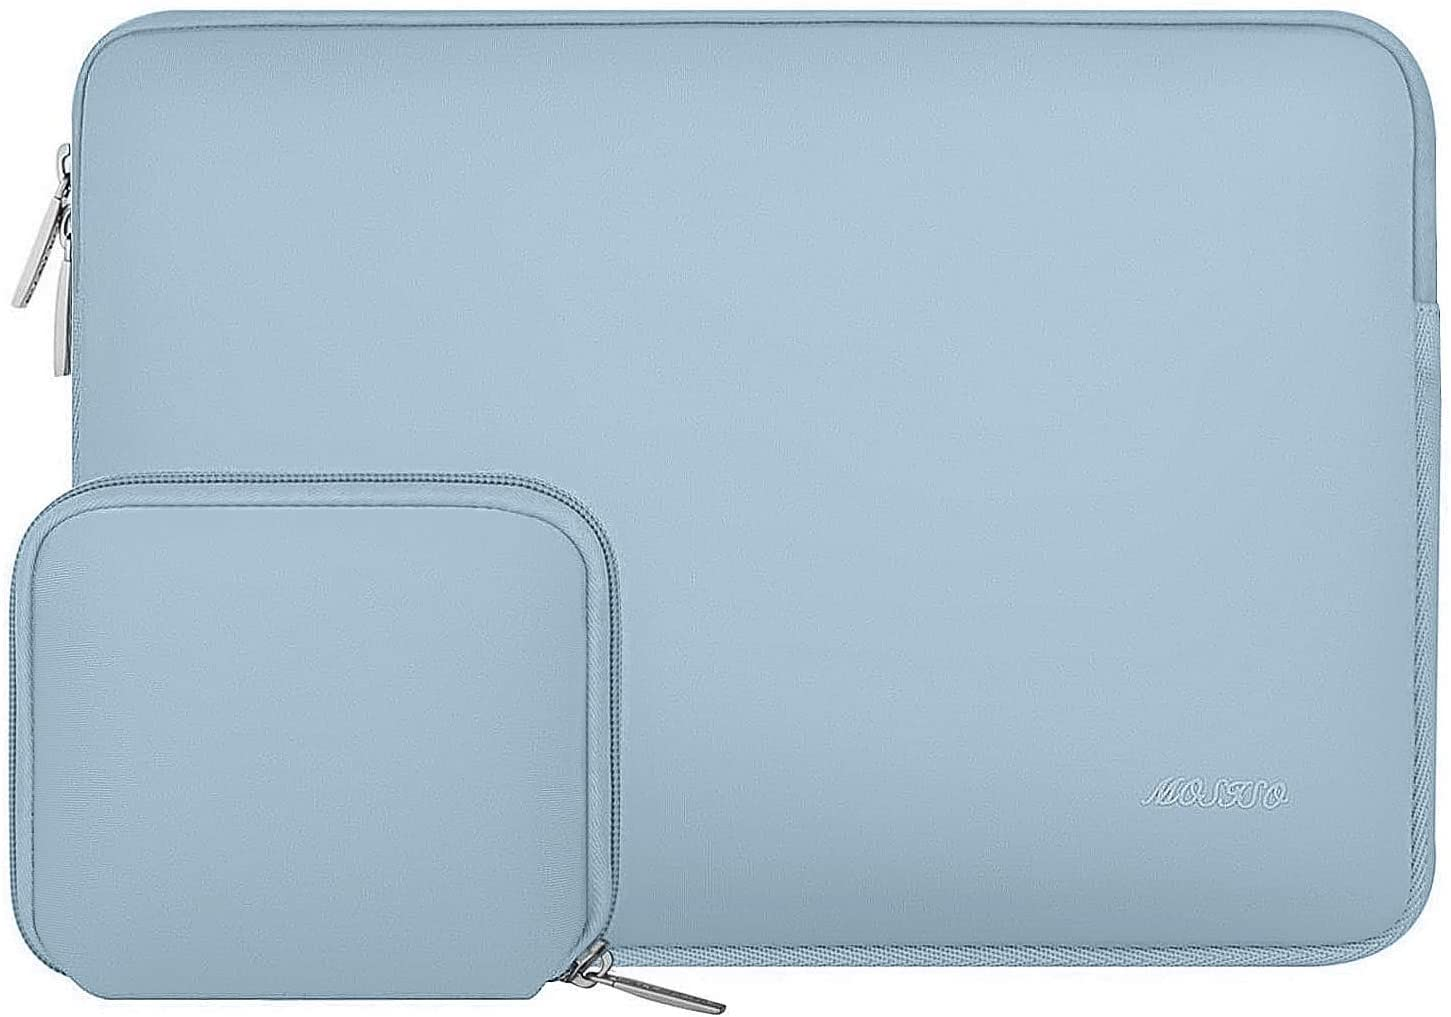 MOSISO Laptop Sleeve Compatible with 13-13.3 inch MacBook Pro, MacBook Air, Notebook Computer, Water Repellent Neoprene Bag with Small Case, Airy Blue